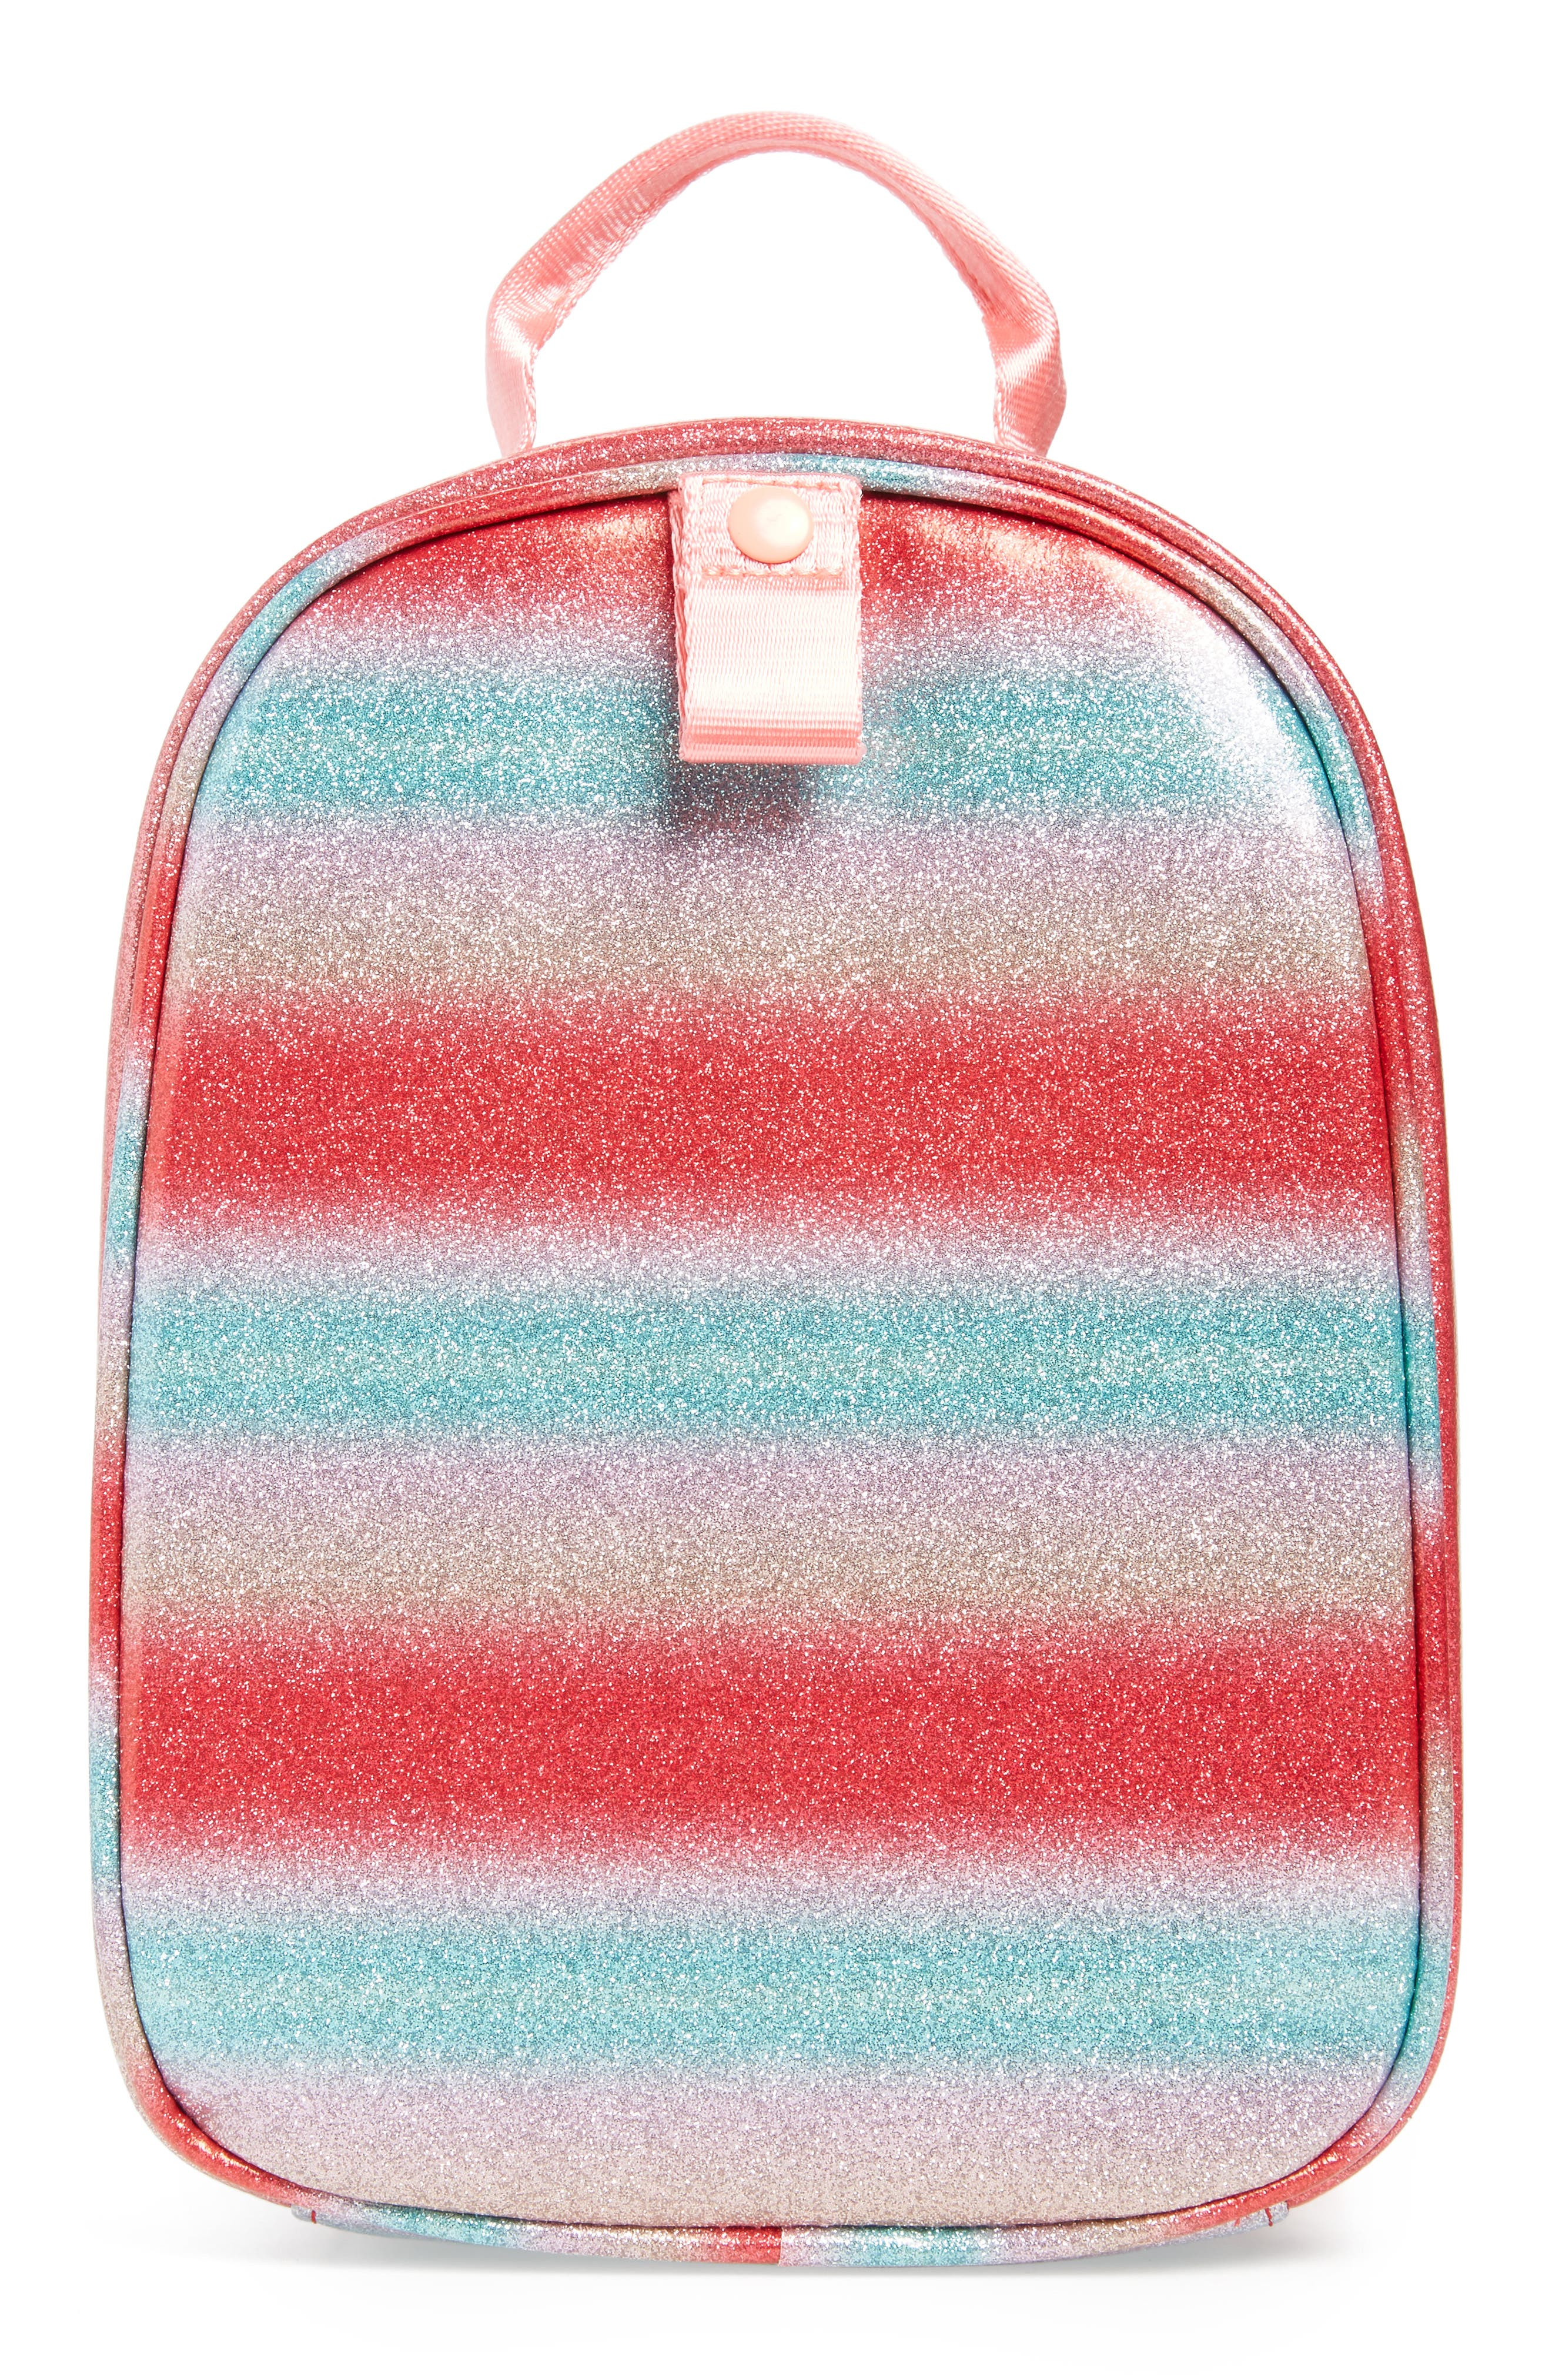 Glitter Stripe Lunch Box,                             Alternate thumbnail 2, color,                             RAINBOW